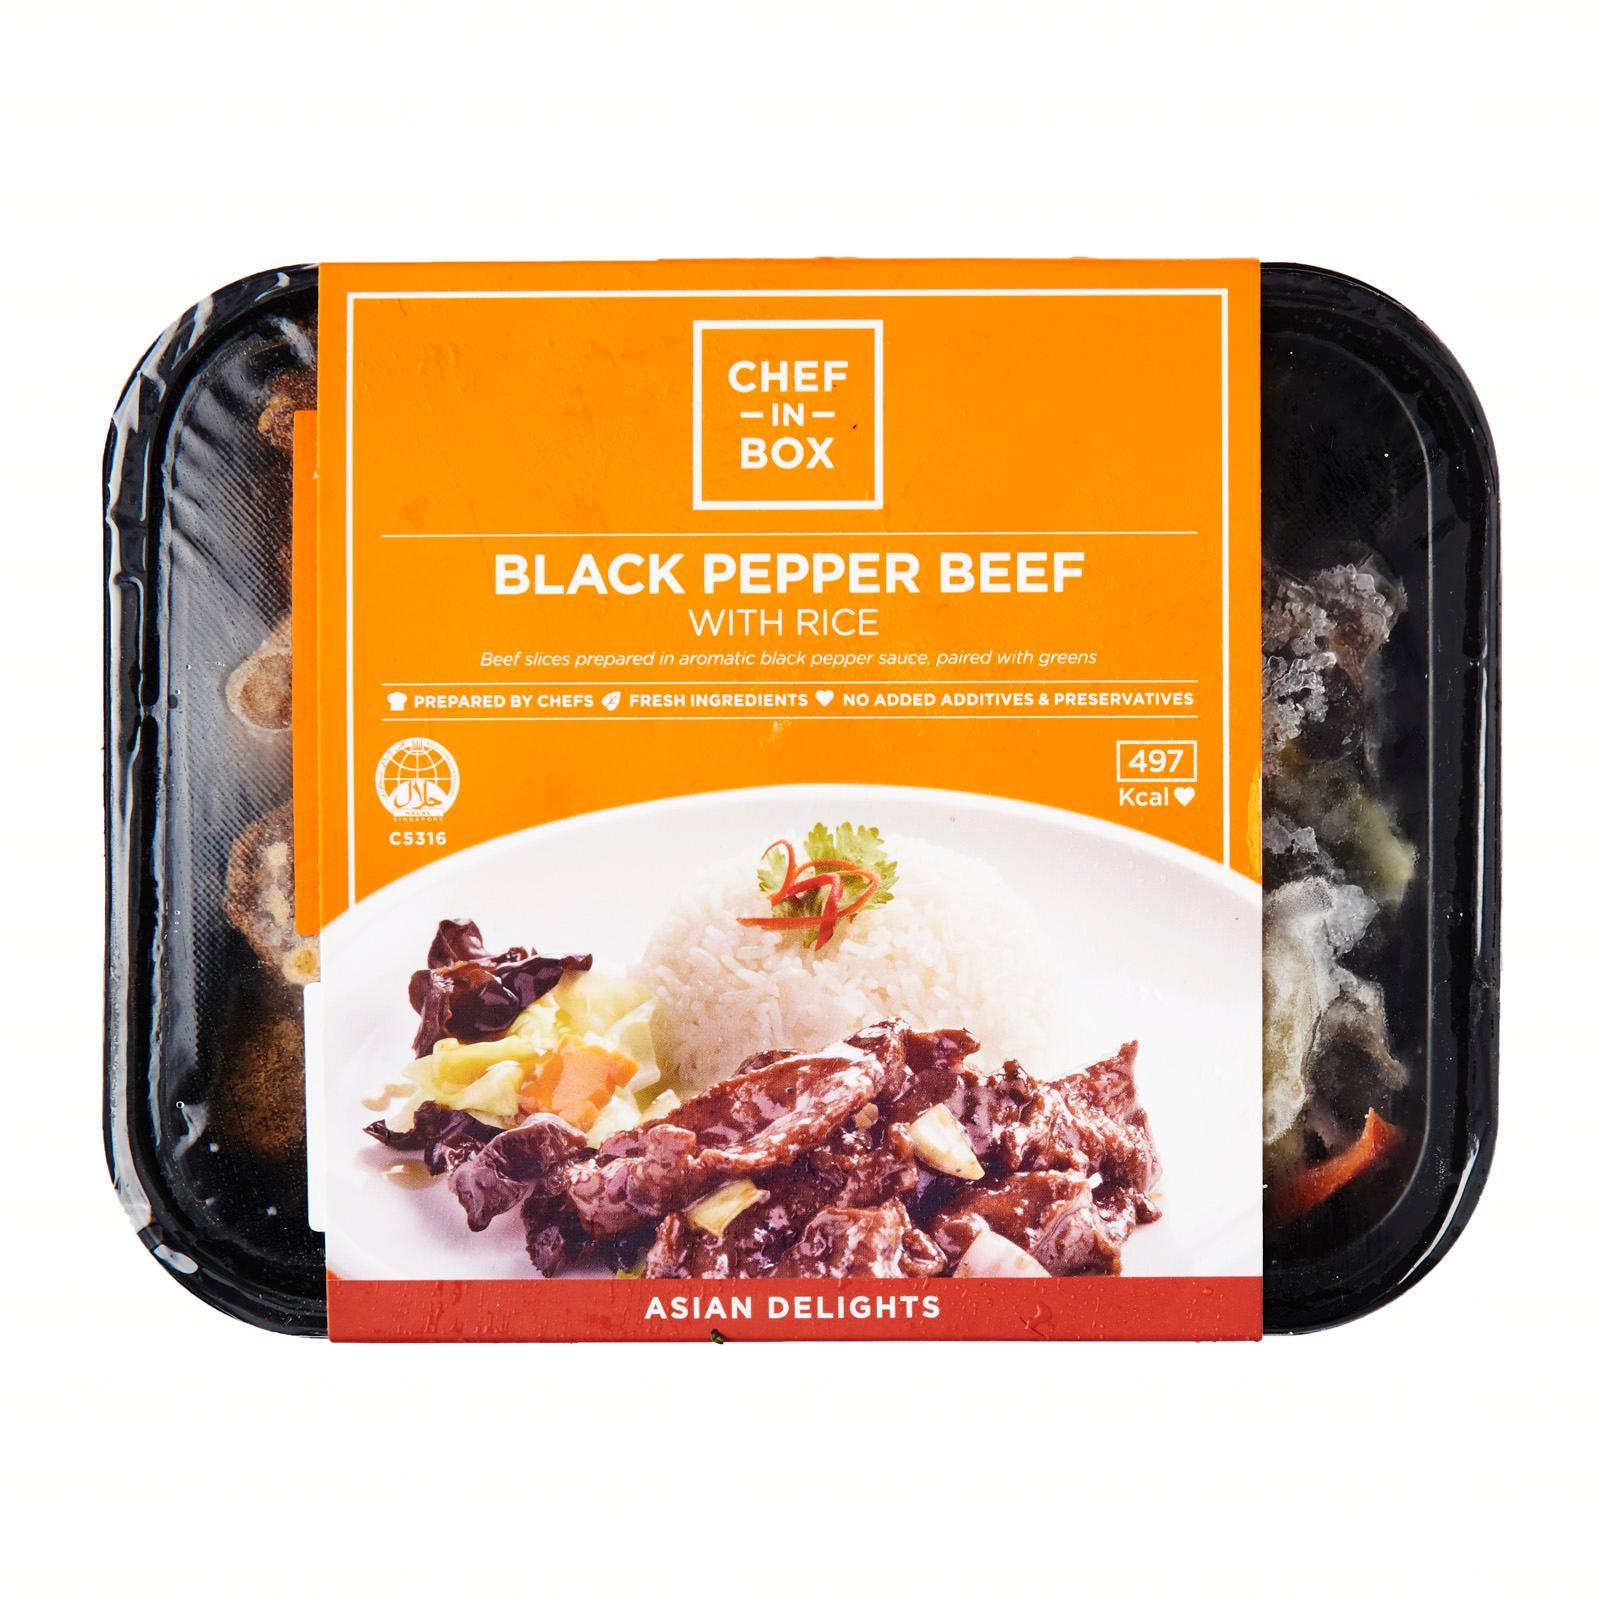 Chef-in-Box Black Pepper Beef With Rice - Frozen